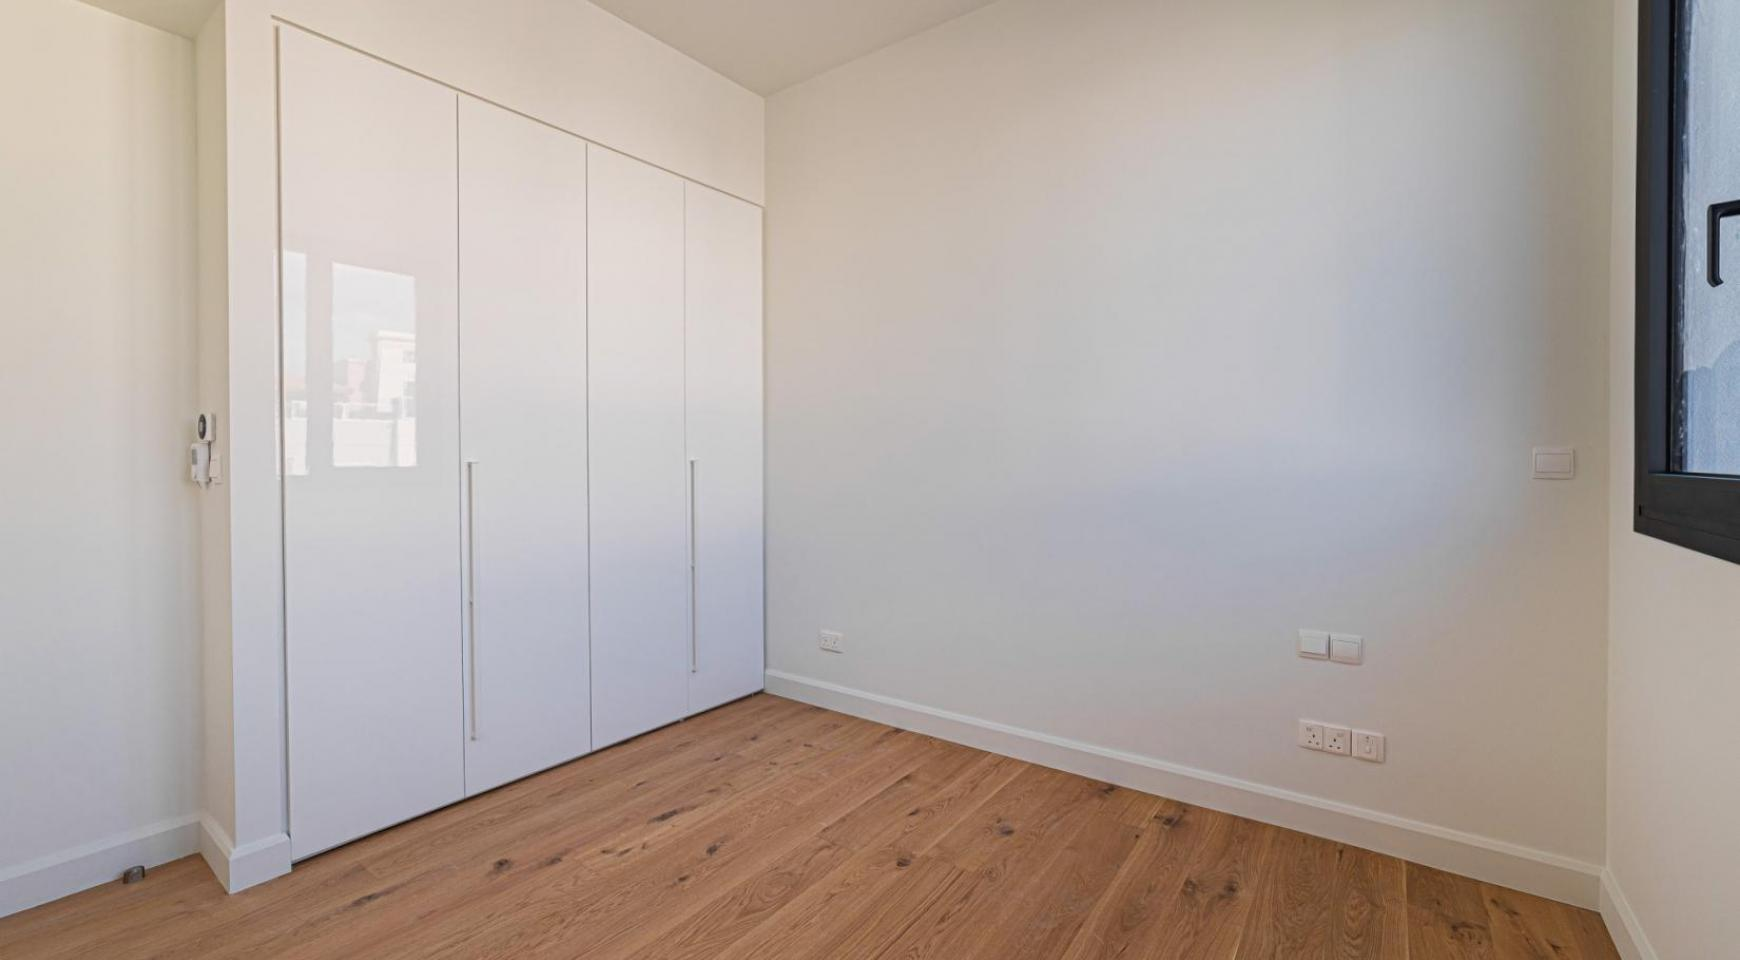 HORTENSIA RESIDENCE, Apt. 101. 2 Bedroom Apartment  in a New Complex near the Sea - 17